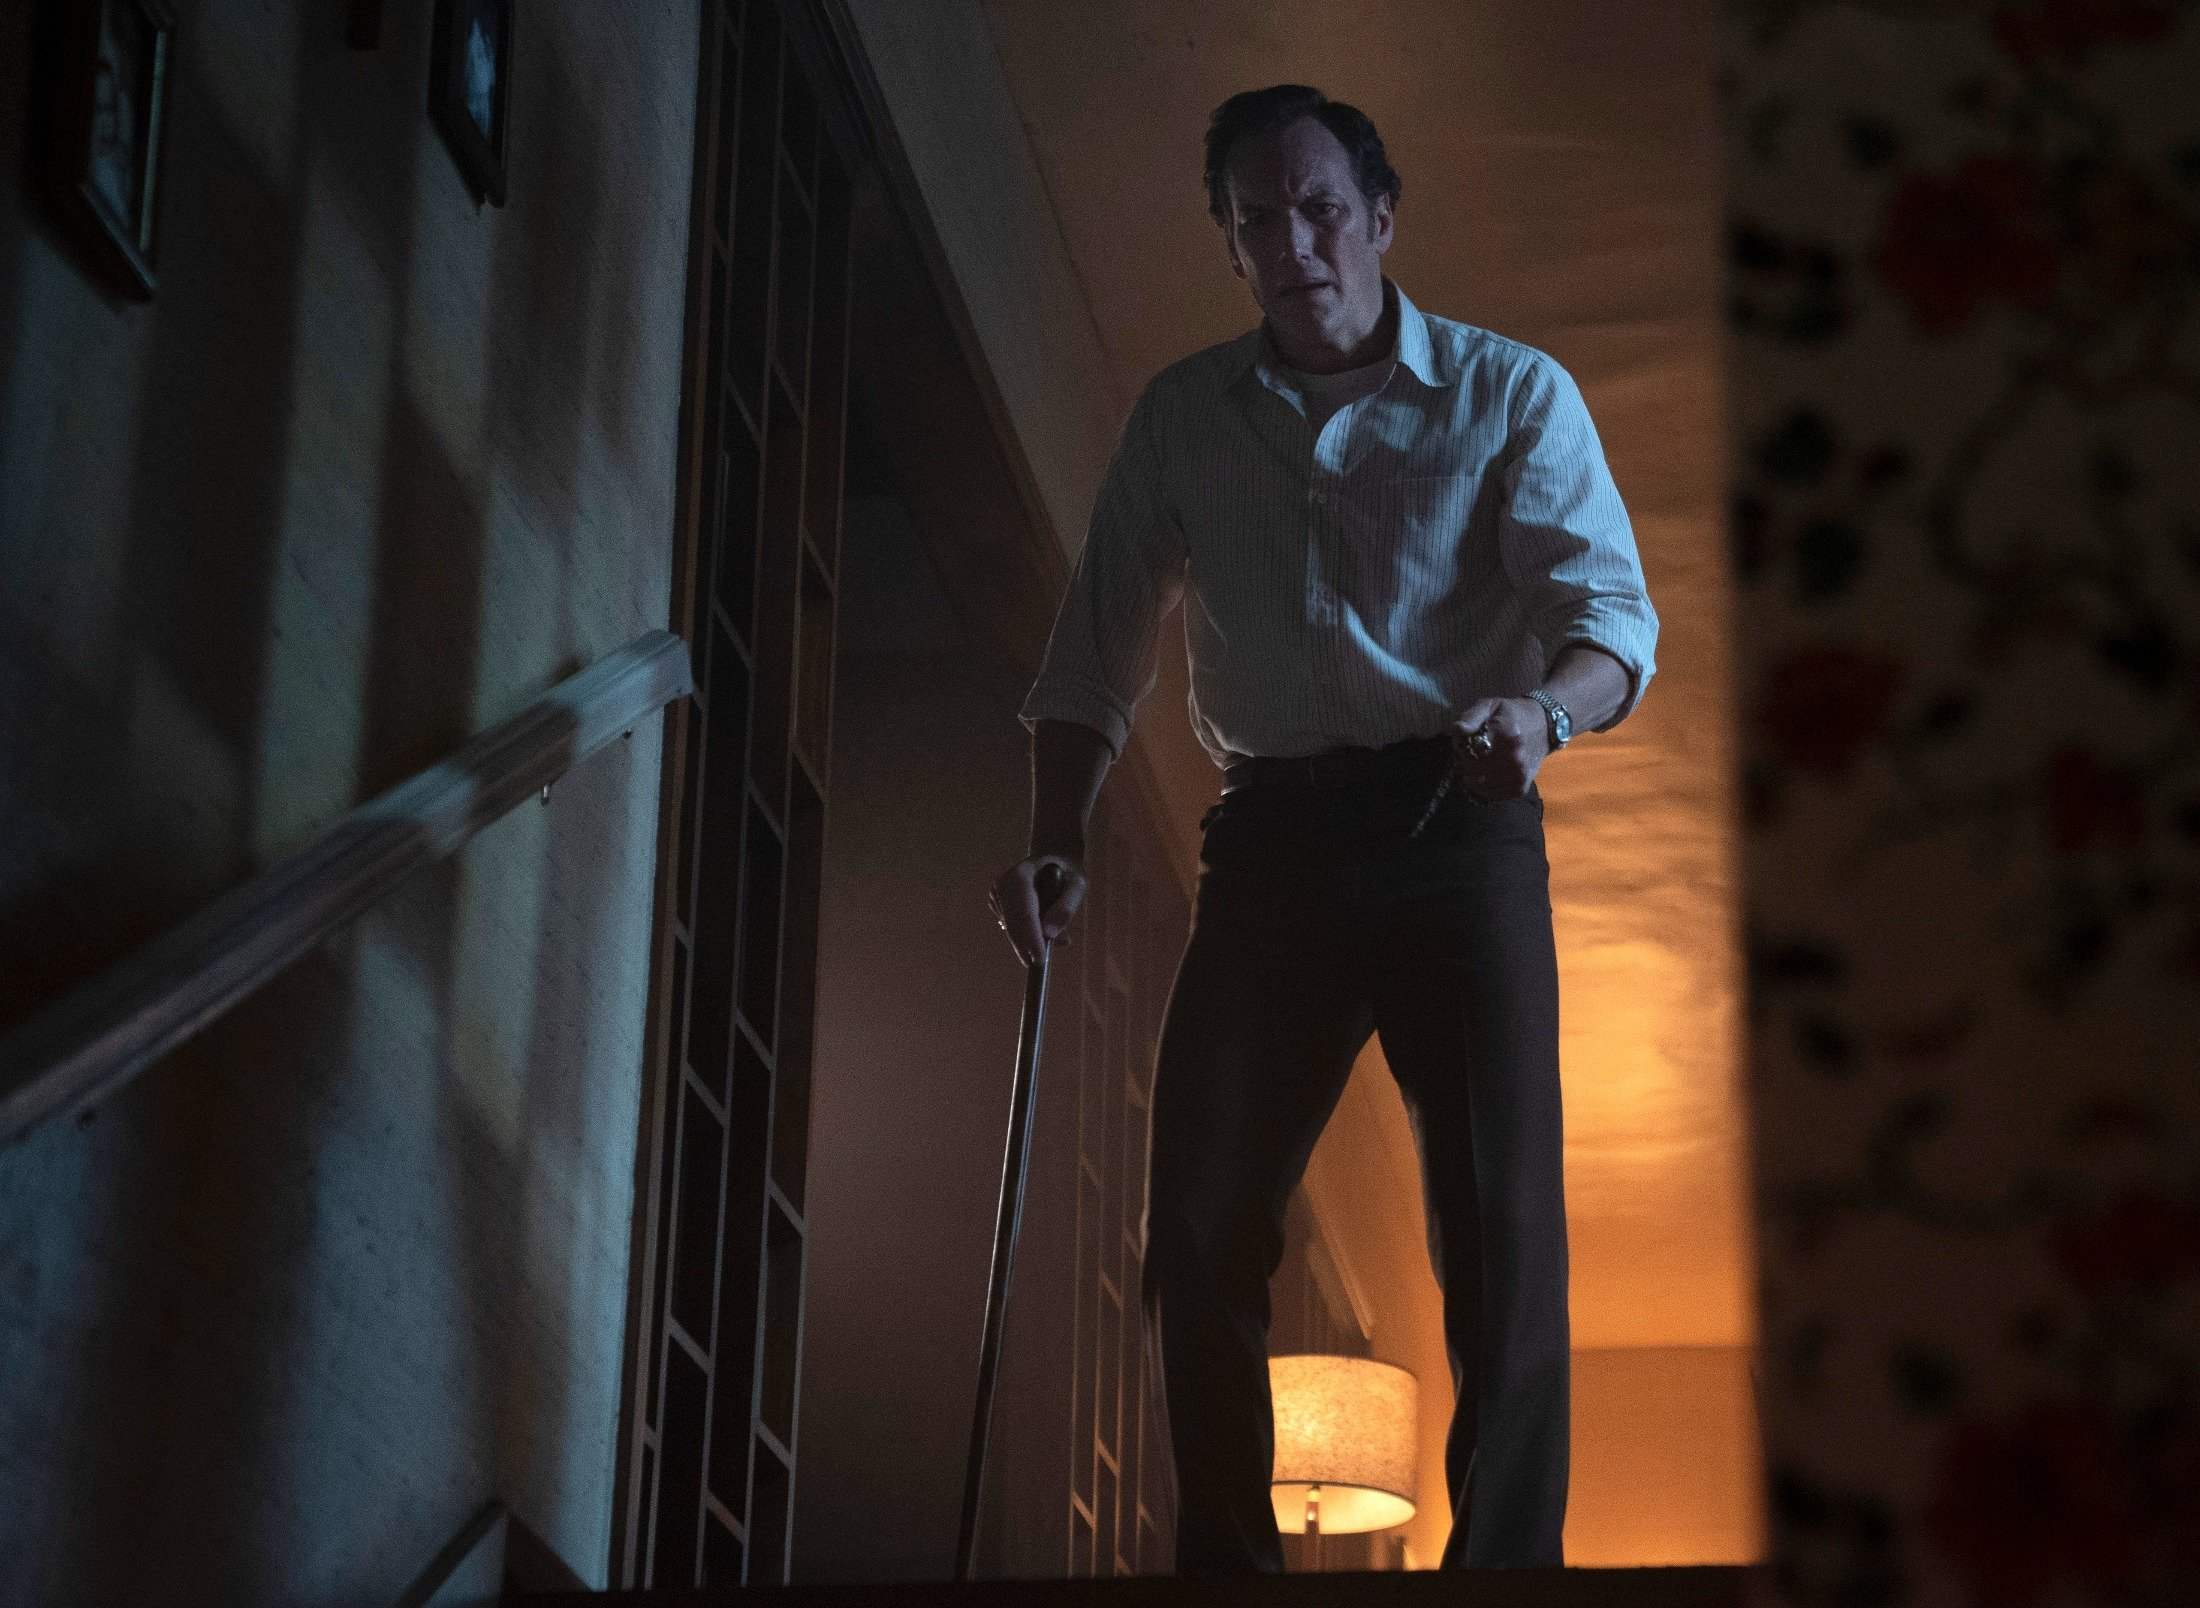 Patrick Wilson leans on a walking stick, in a scene from 'The Conjuring: The Devil Made Me Do It.' (Warner Bros. via AP)